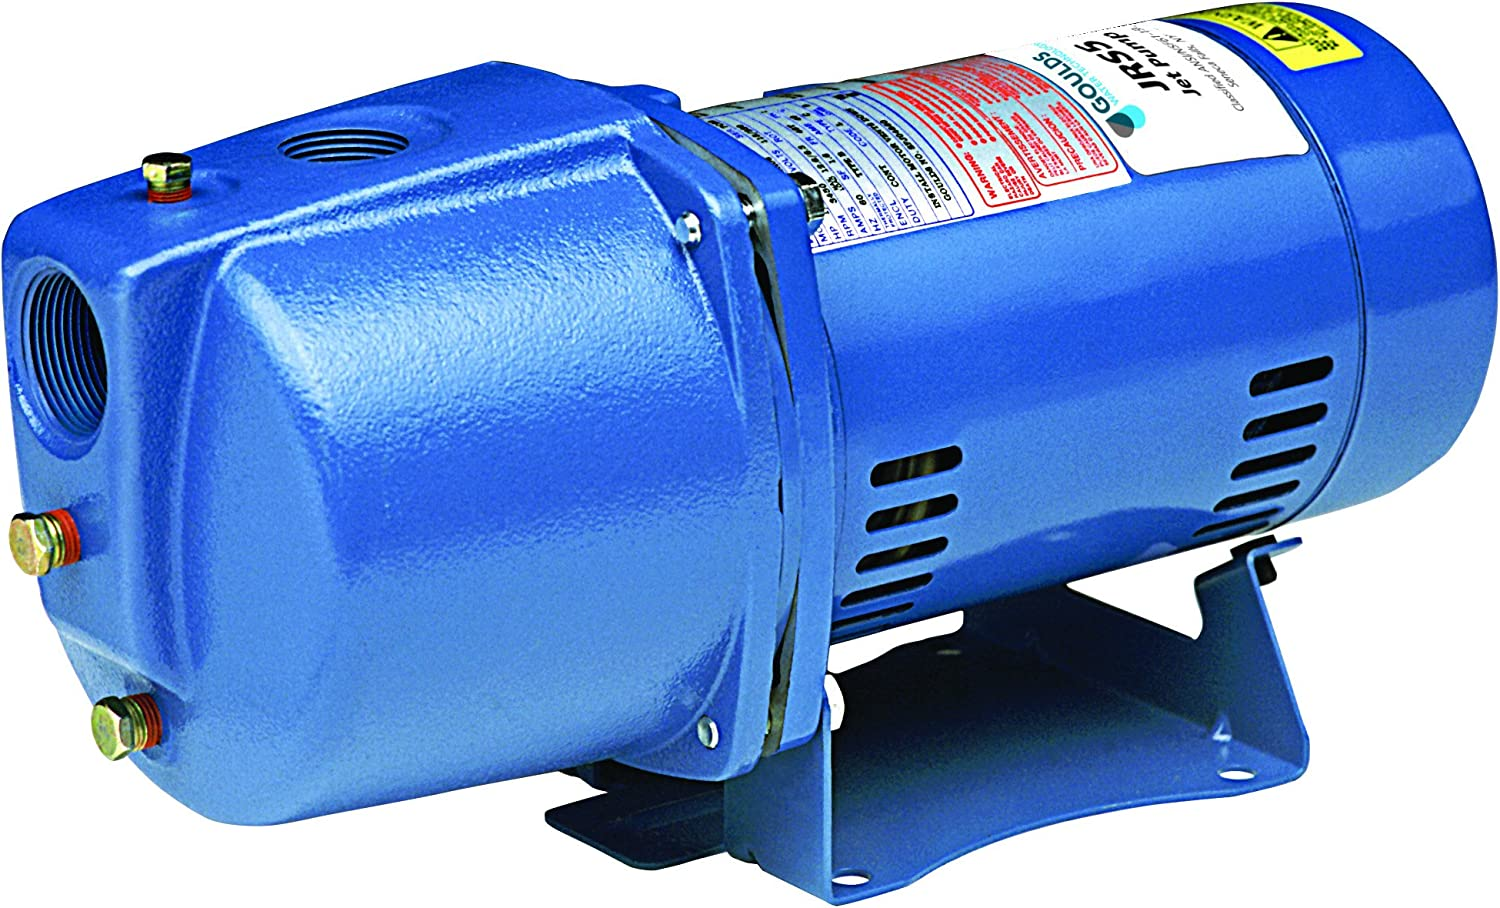 Goulds JRS10 Ranking TOP5 Shallow Water Well Jet Phase 11 Single Pump HP 1 Max 80% OFF